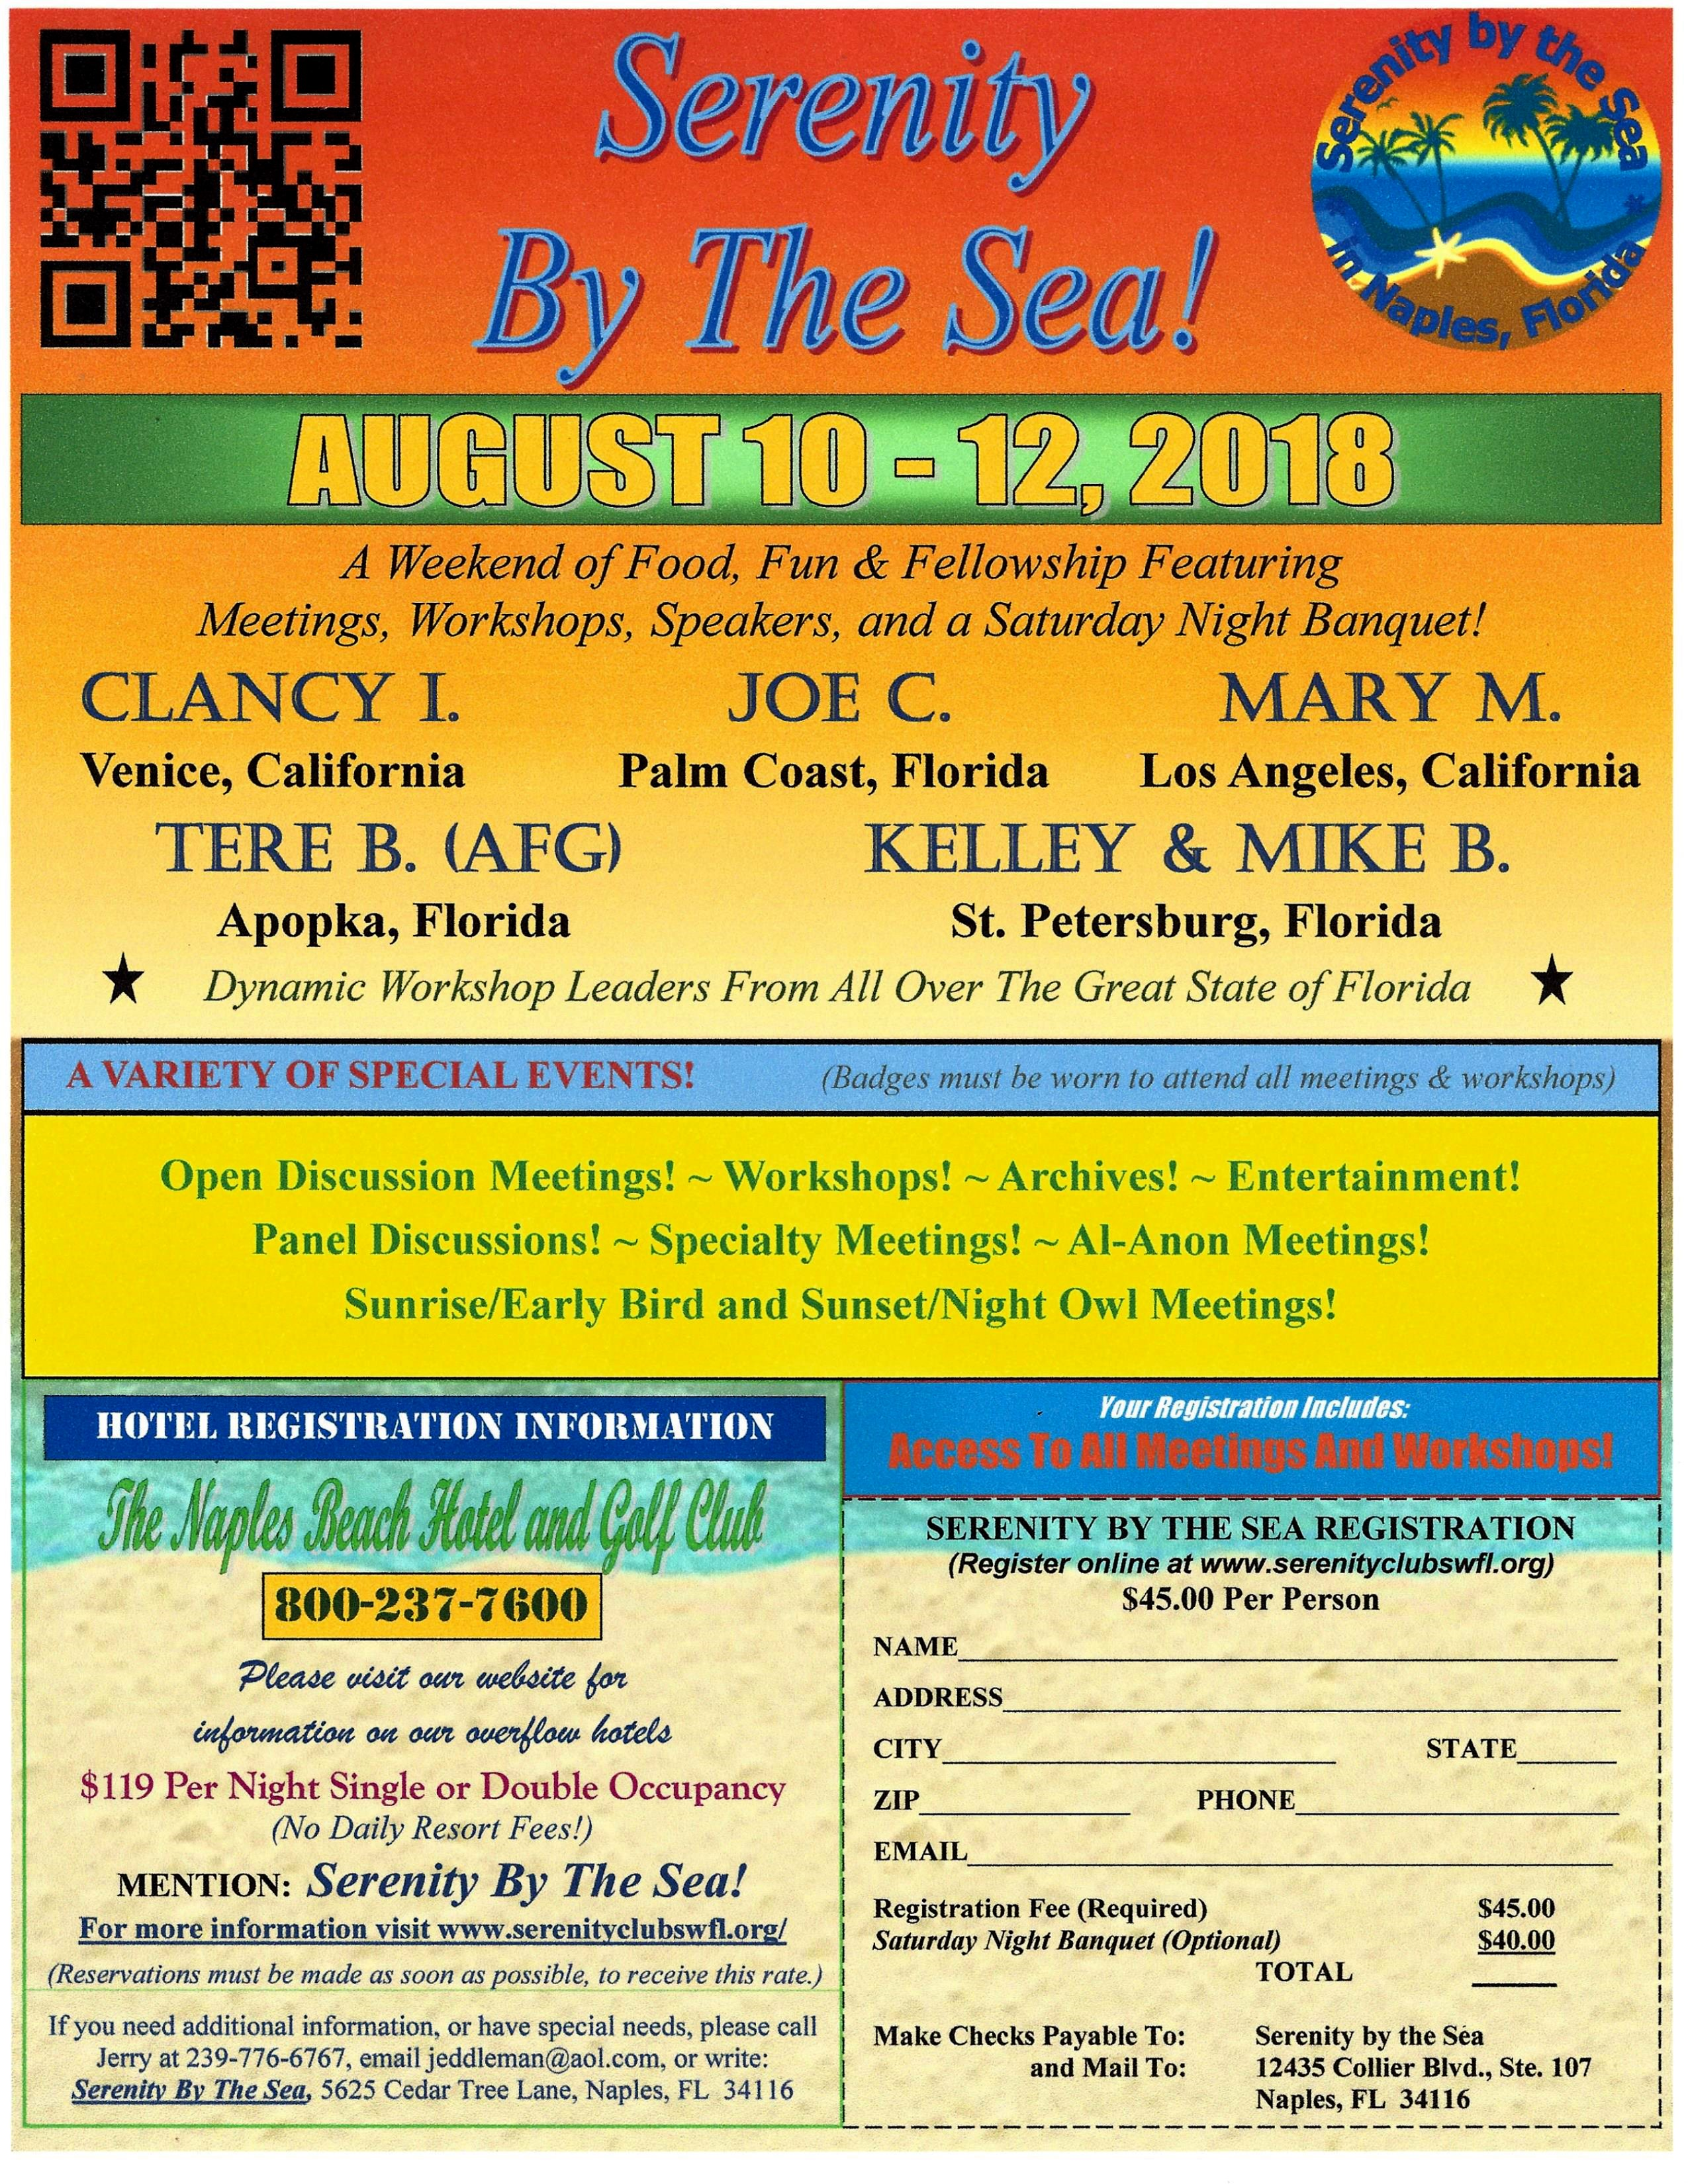 NEW Serenity By The Sea 2018 Registration Flyer | Serenity Club of